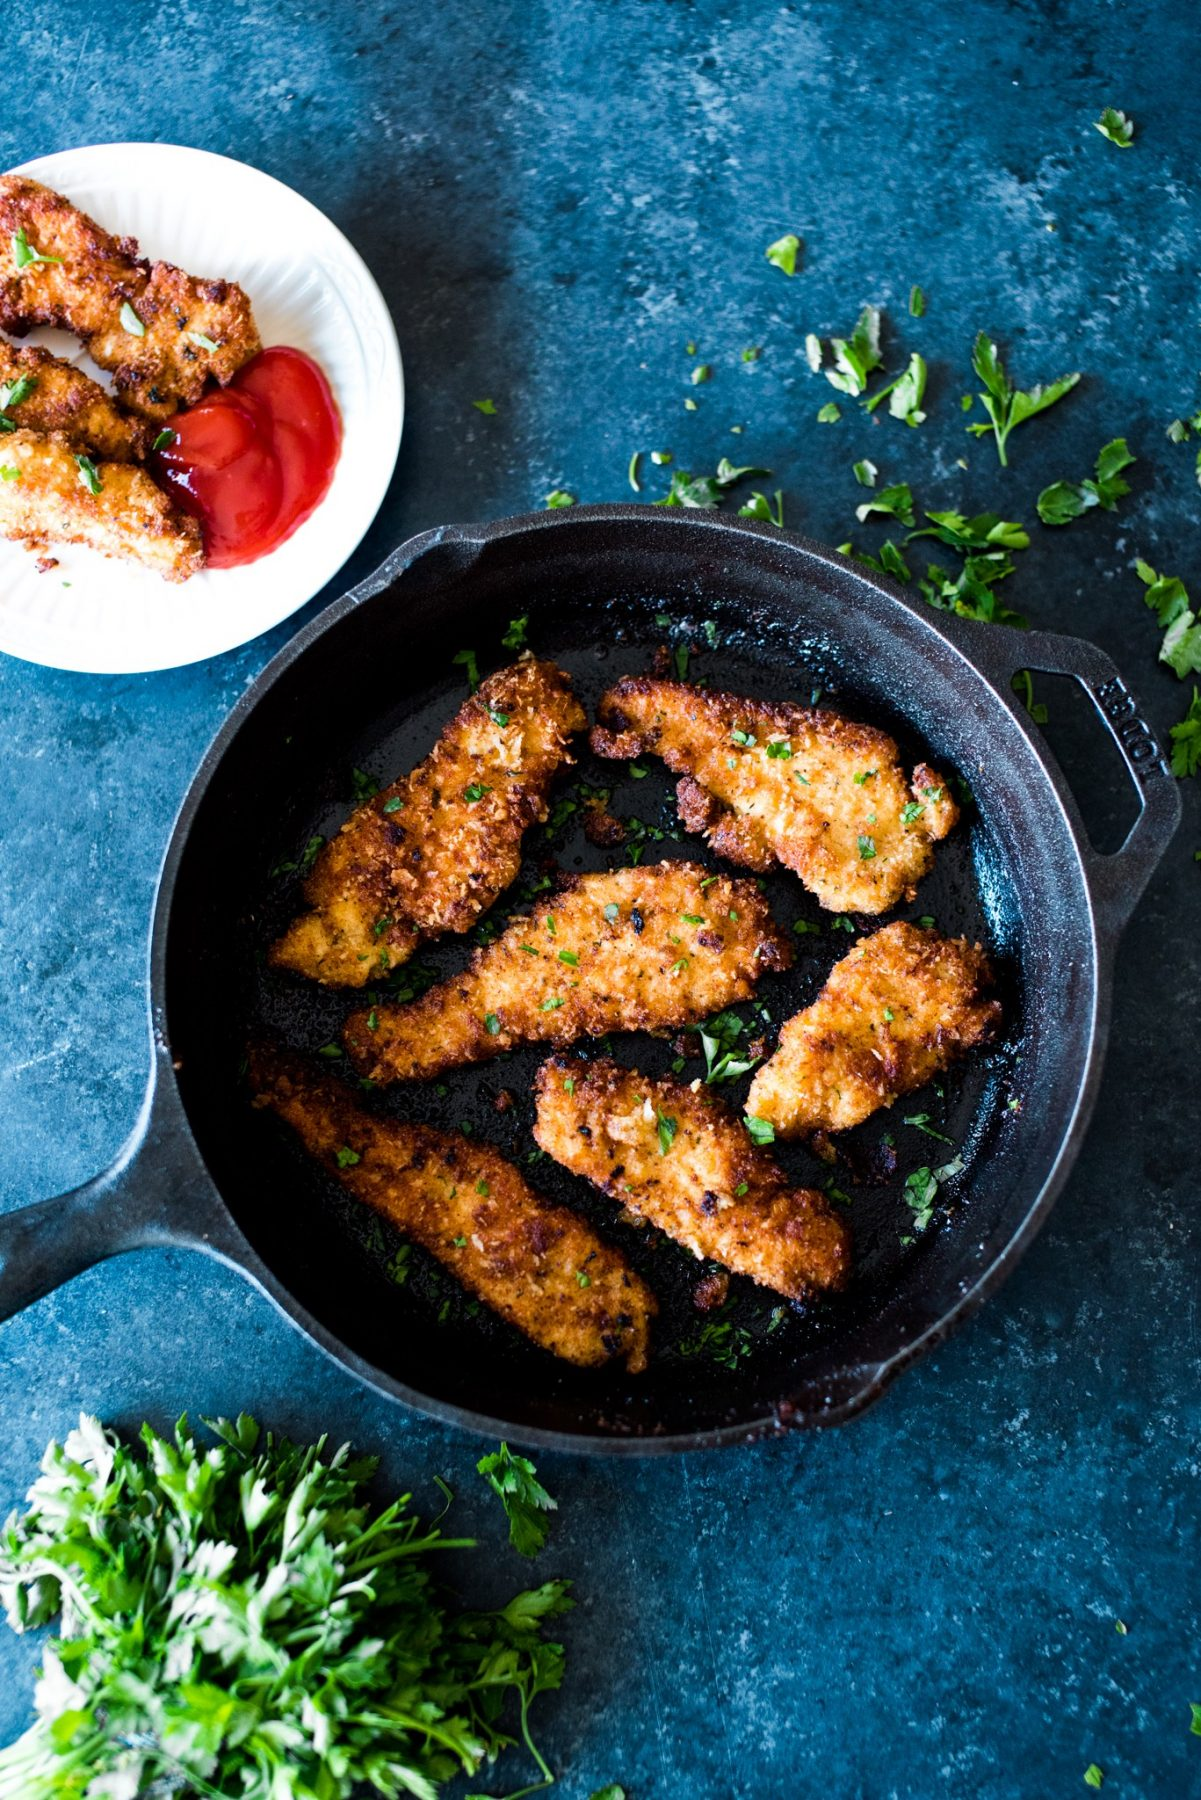 Comfort Food Alert: Homemade Crispy Chicken Tenders